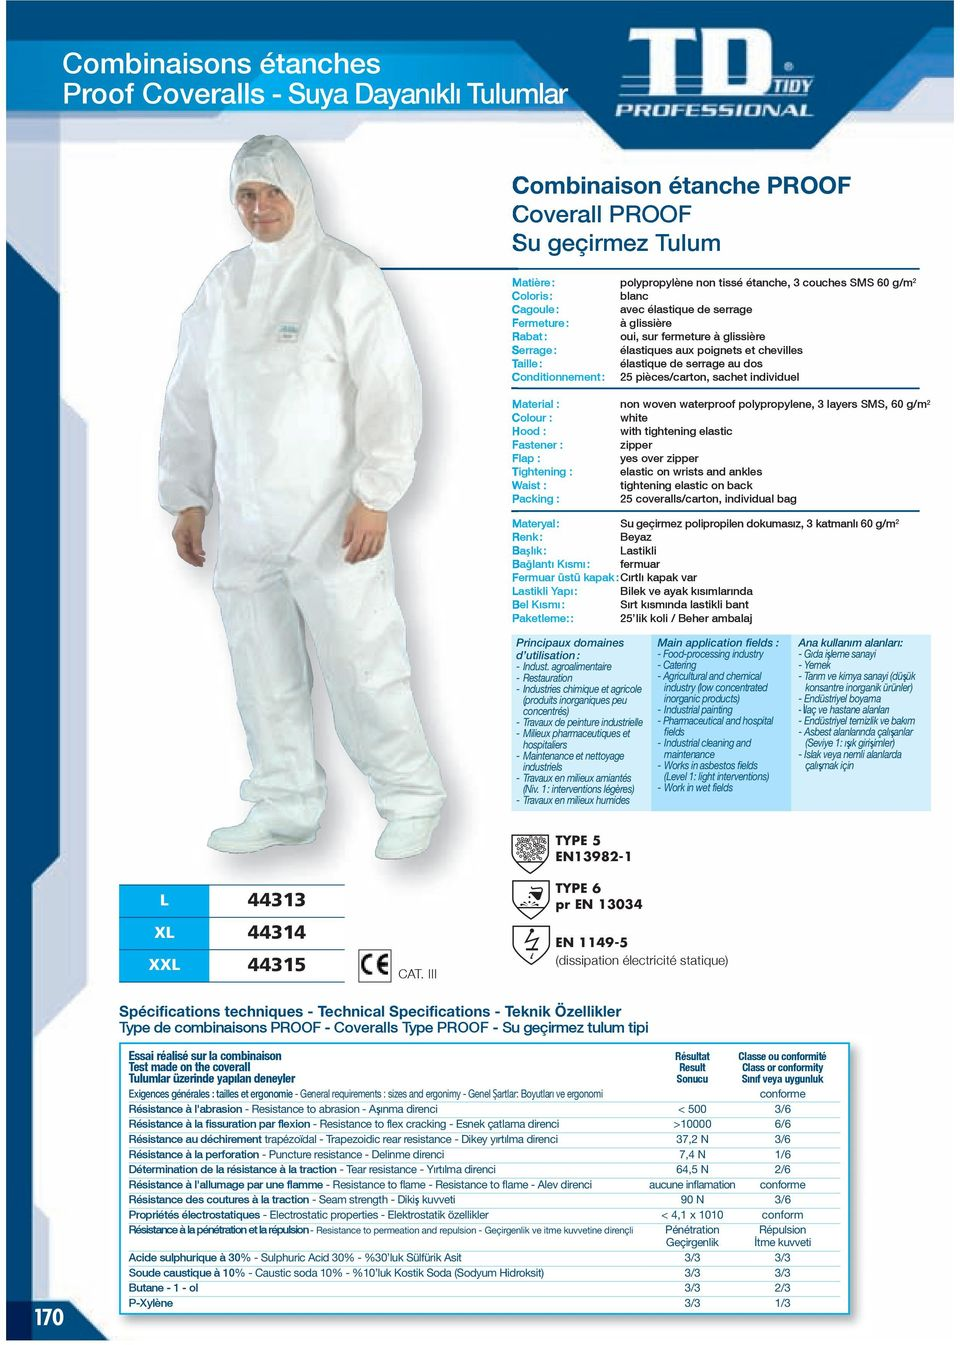 pièces/carton, sachet individuel non woven waterproof polypropylene, 3 layers SMS, 60 g/m 2 Hood : with tightening elastic Fastener : zipper Flap : yes over zipper Tightening : elastic on wrists and